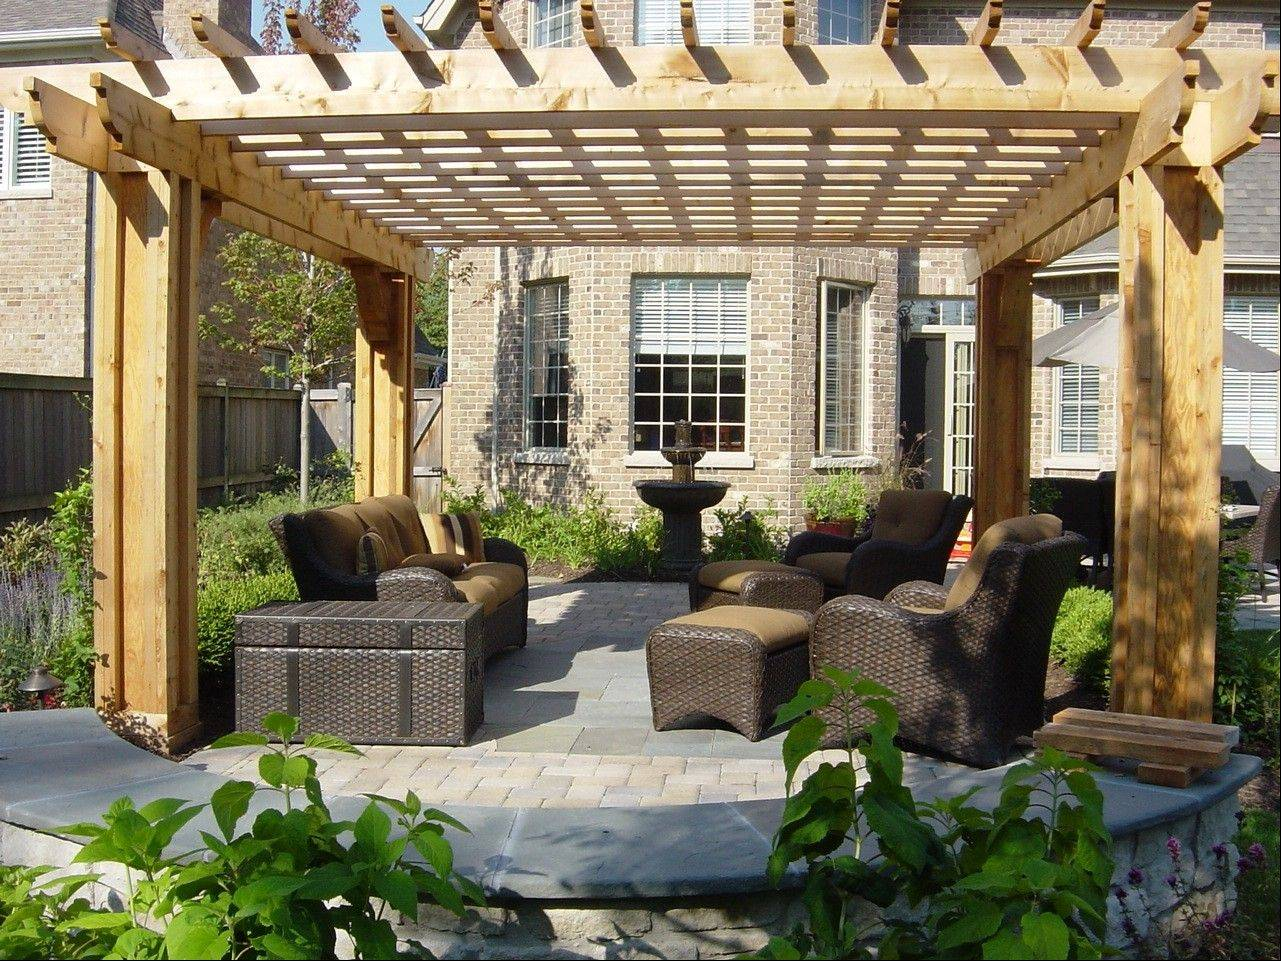 Patio's with pergolas are a popular outdoor design feature today.